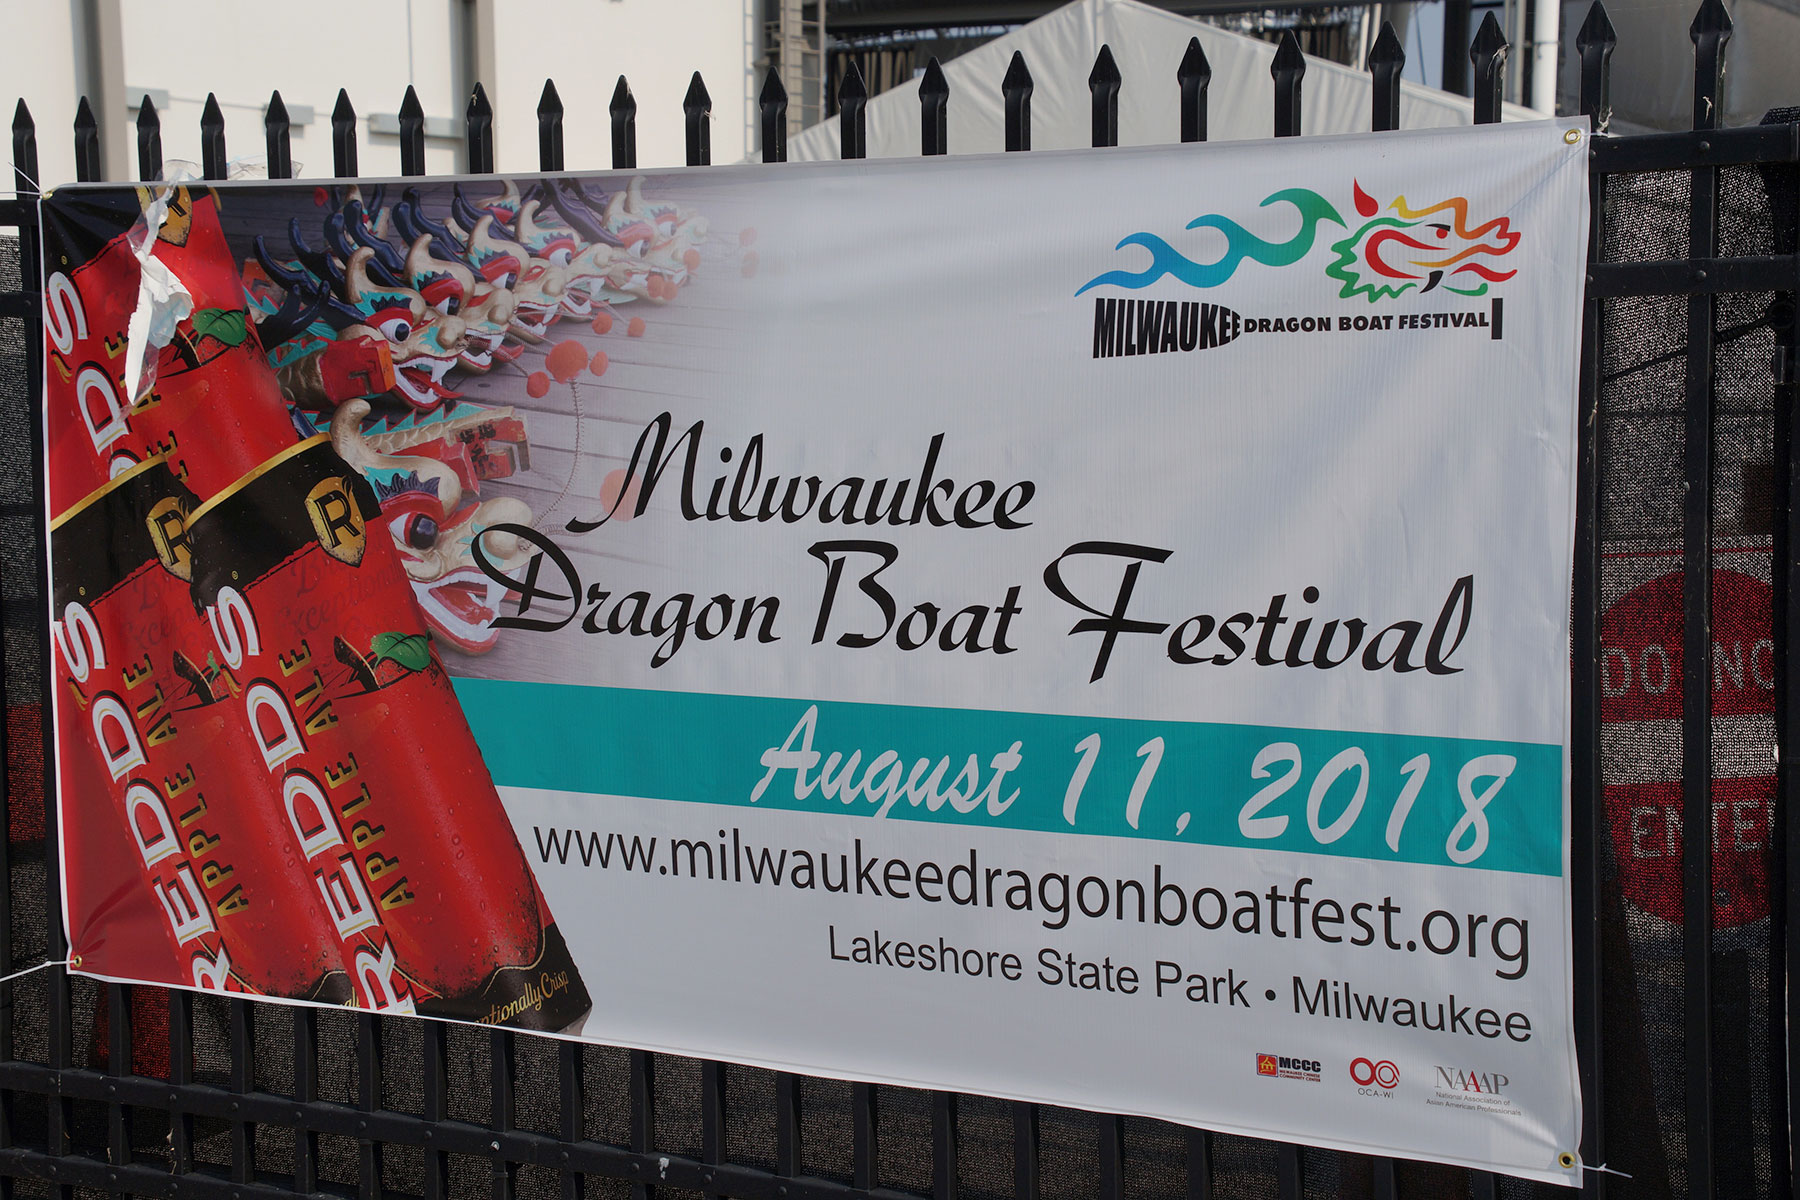 081118_dragonboat_002